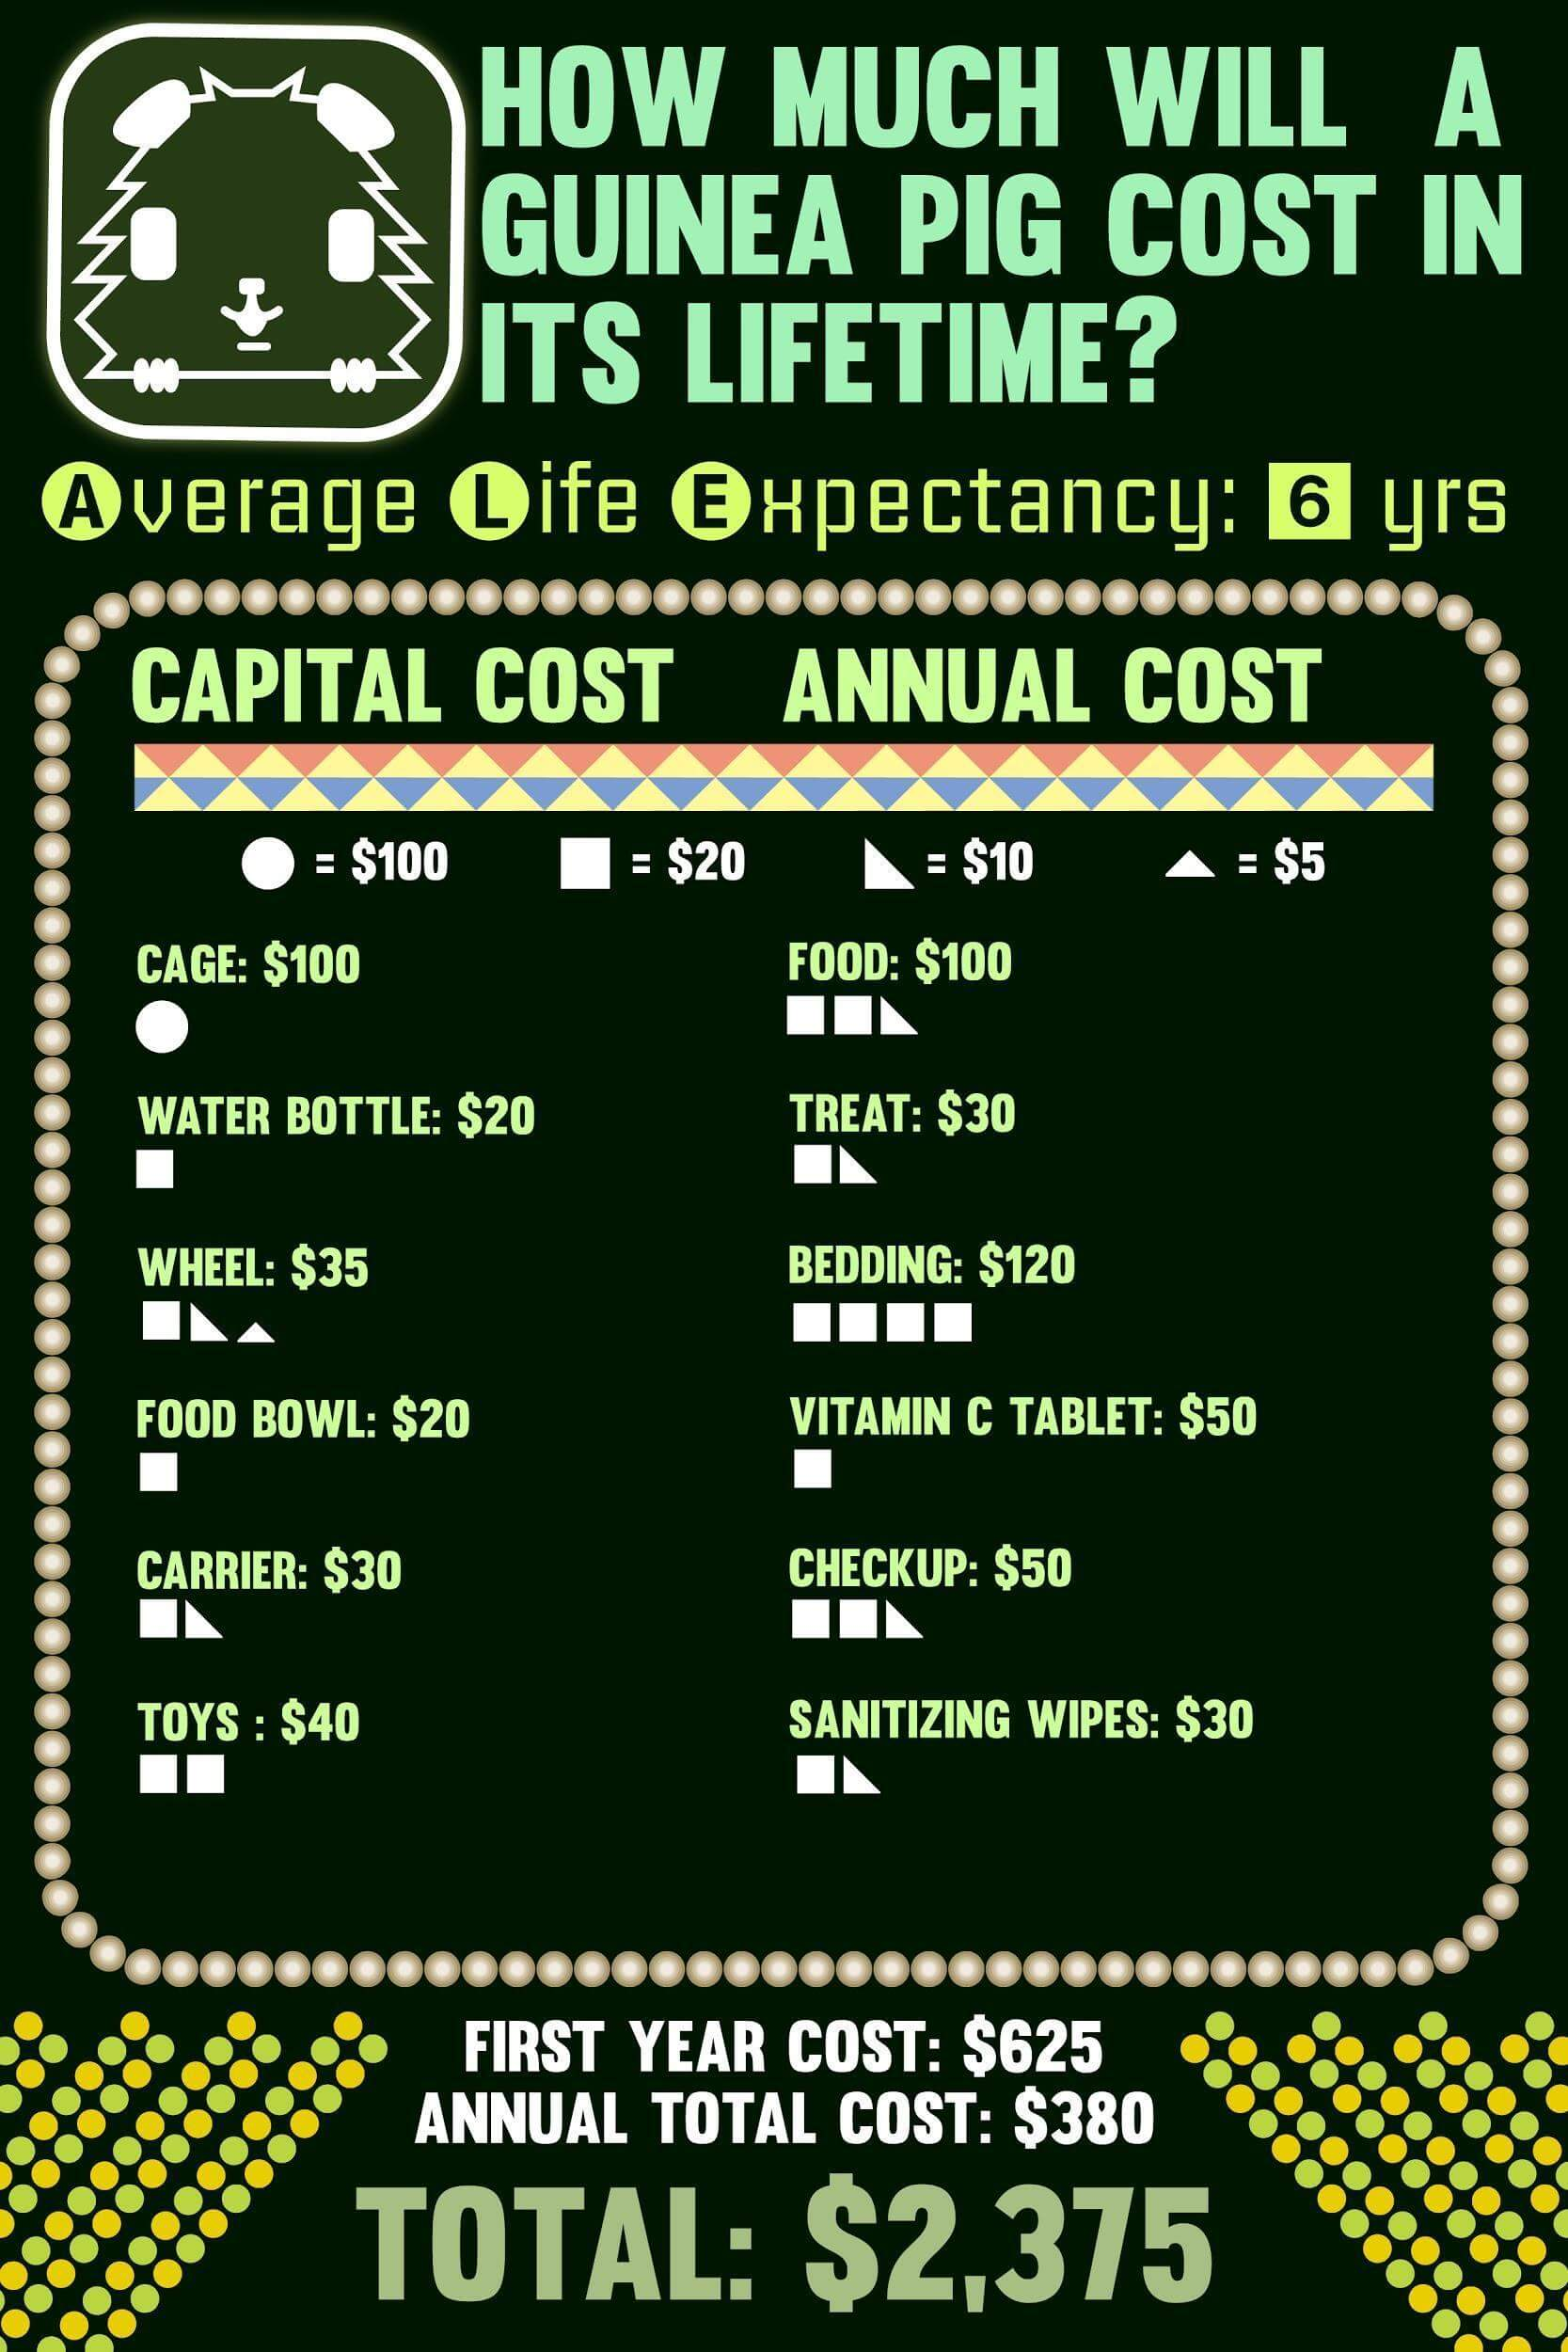 Lifetime cost of Guinea Pigs